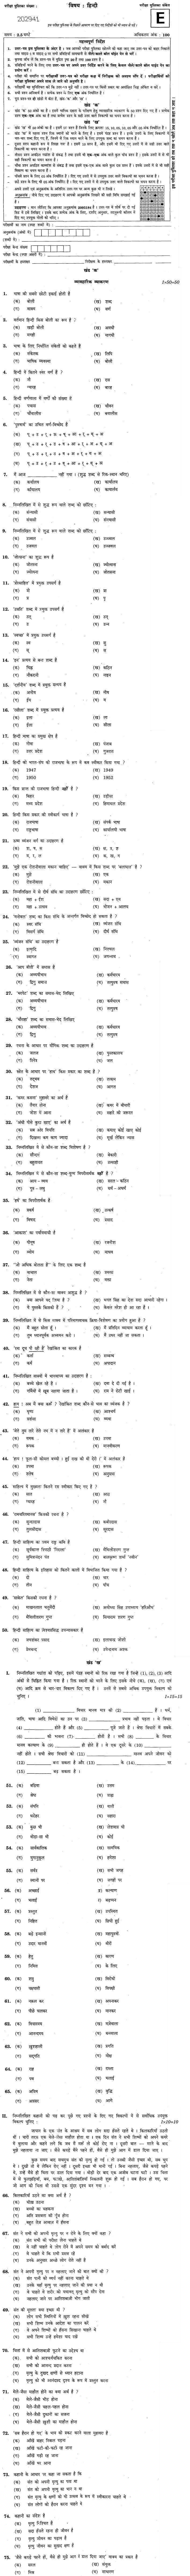 CBSE Proficiency Test 2013 Question Papers - Hindi